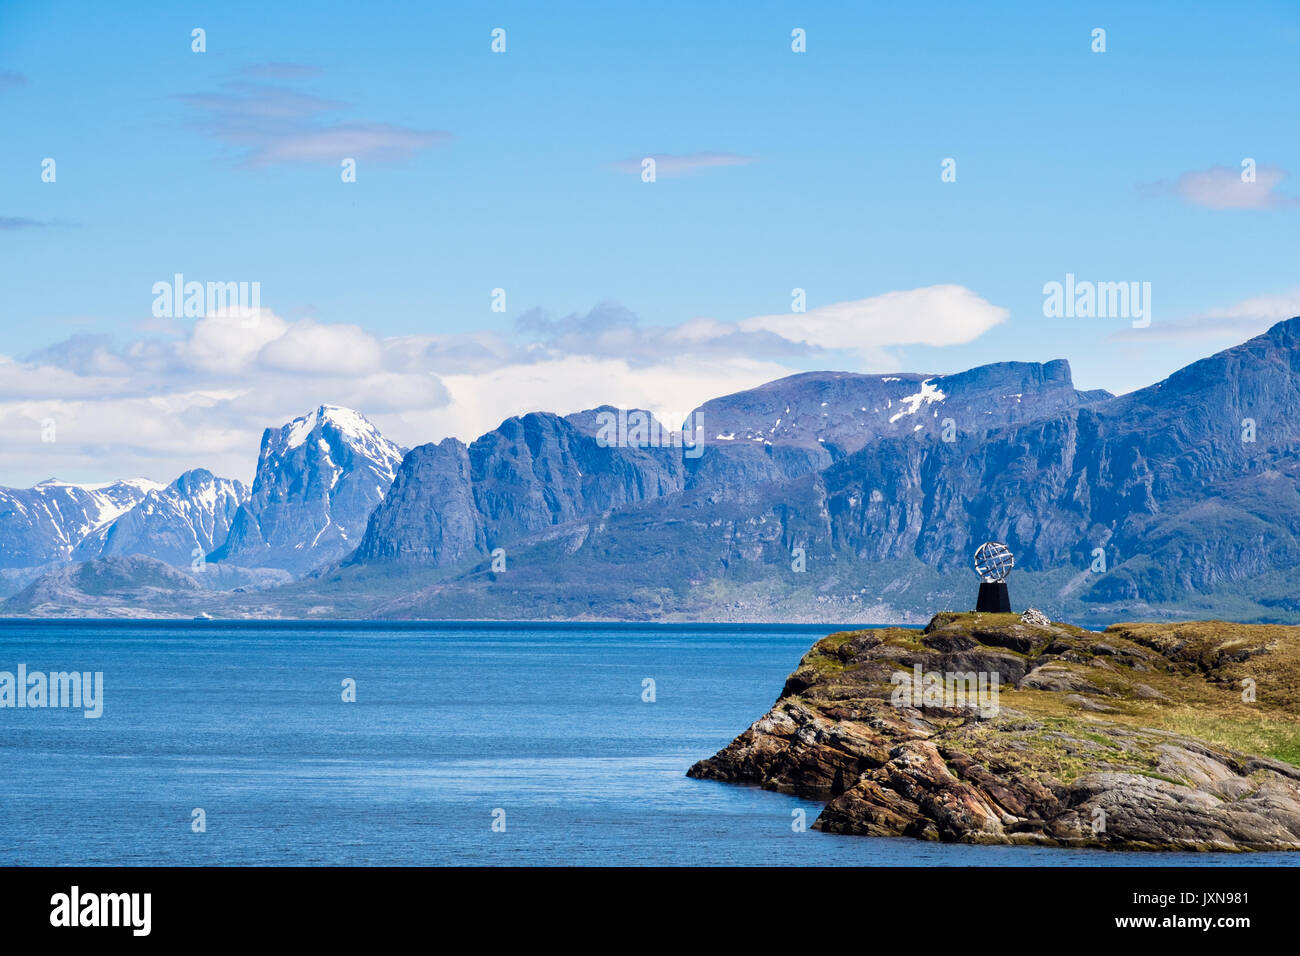 Arctic Circle Monument Globe sculpture on Vikingen Island, Rødøy municipality, Nordland, Norway, Scandinavia, Europe. Mefjorden - Stock Image